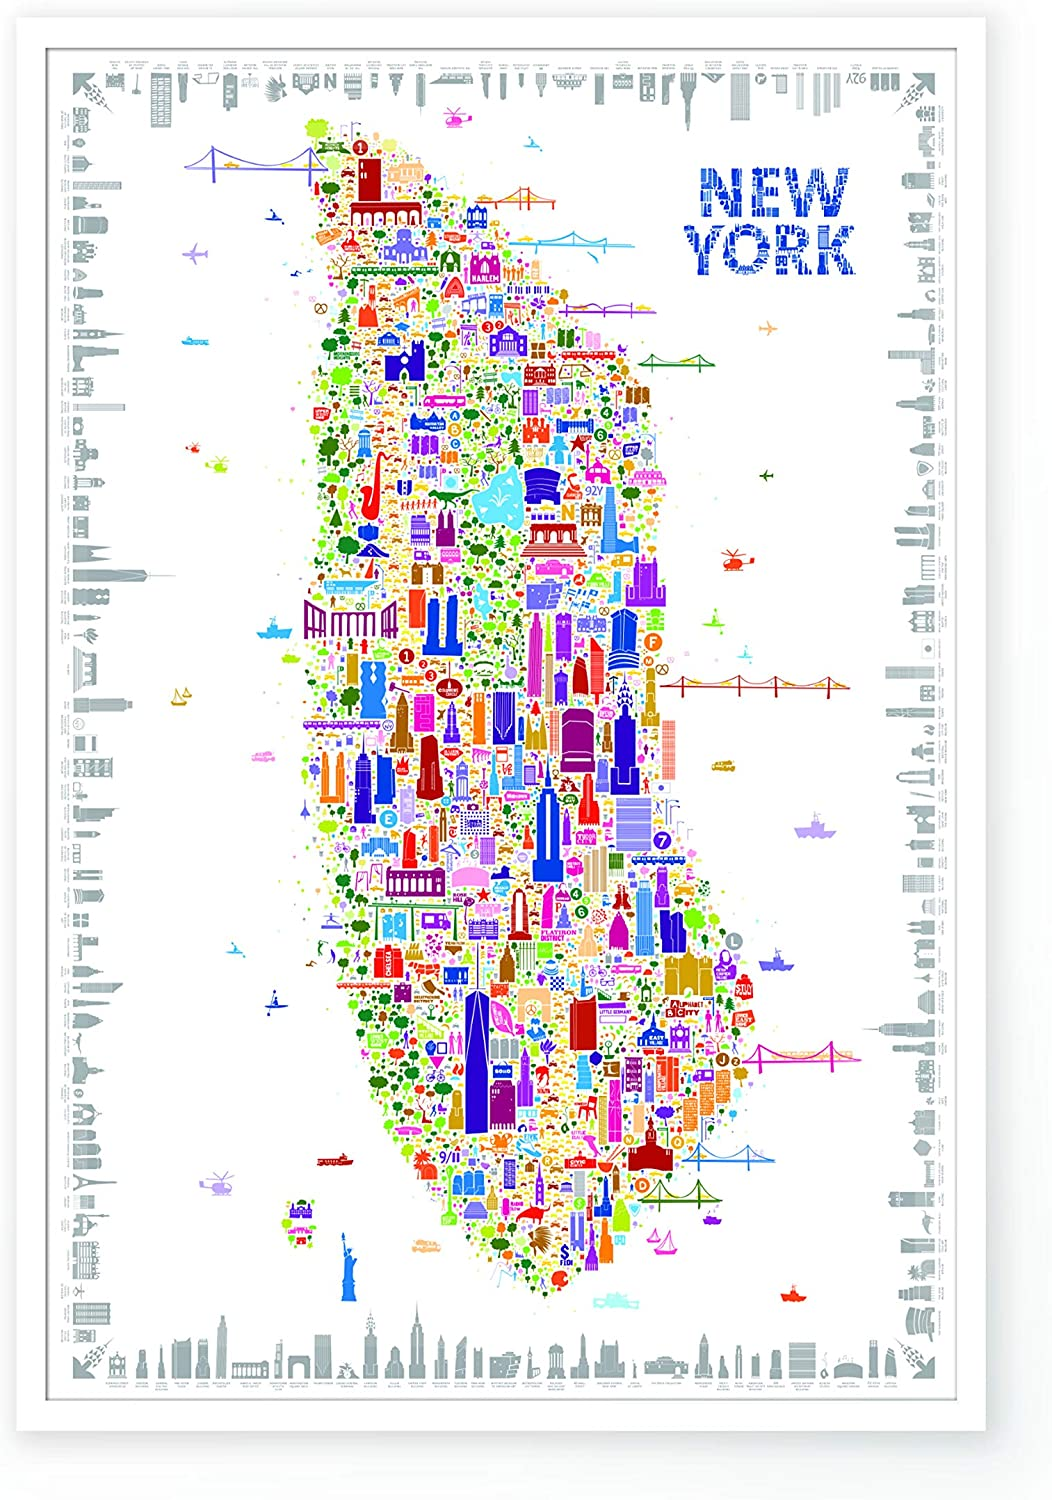 "Iconic New York Poster Artwork For Home Walls – Designer Wall Art of Trendy NYC Map | City Fashion Decor Travel Posters | Maps Souvenirs Paper Prints For Office 27x40"" Unframed – By Alfalfa New York"